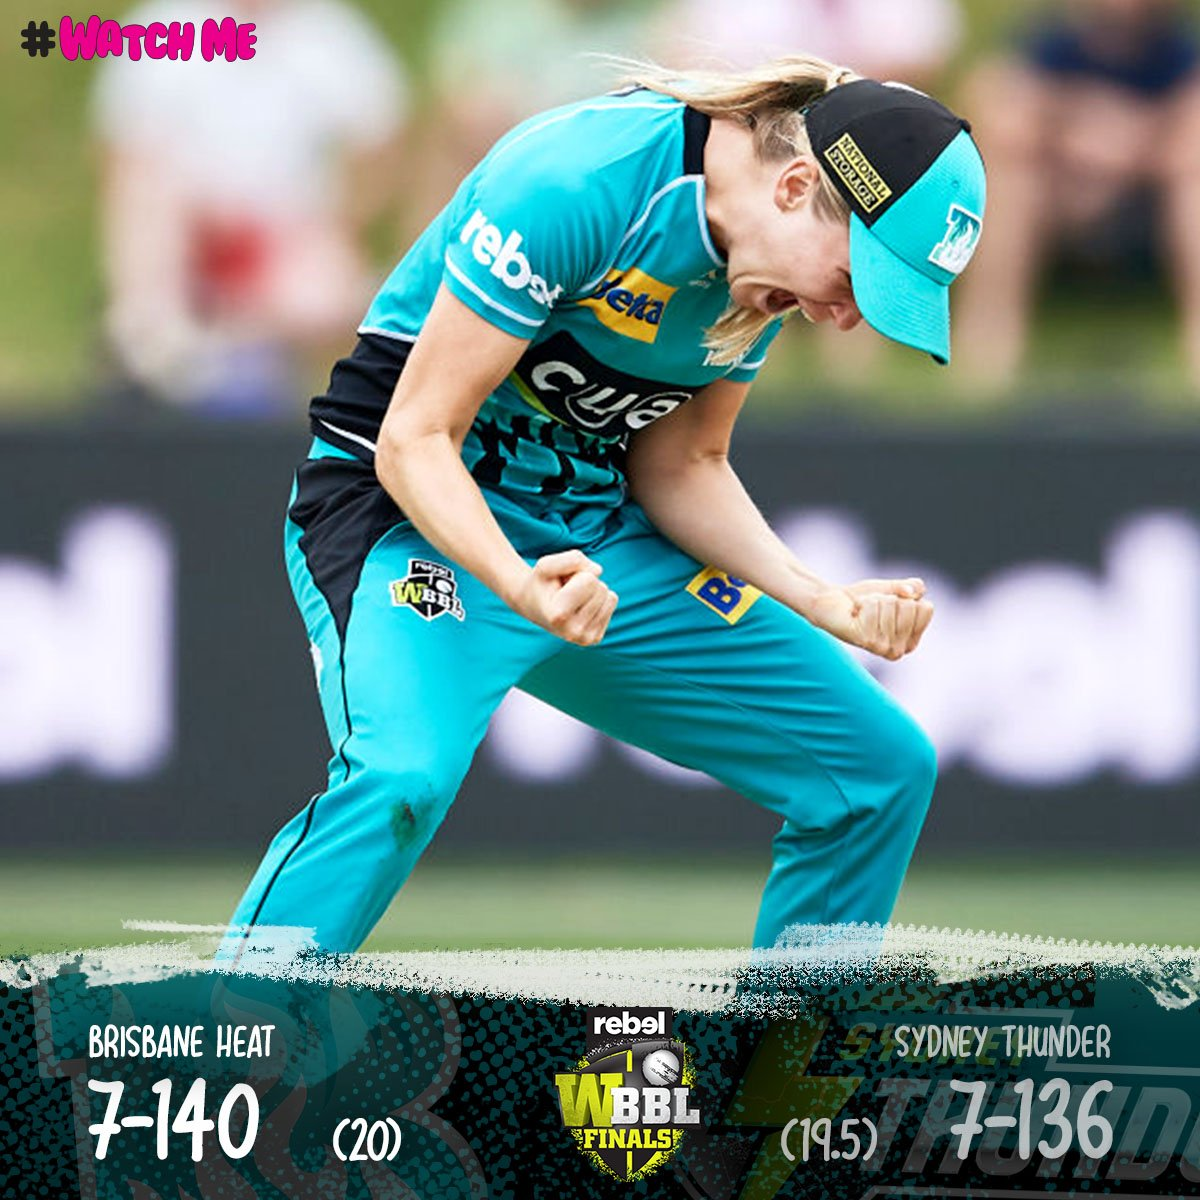 THE HEAT ARE IN THE FINAL! 🔥🔥🔥 WHAT A FINISH! #WBBLFinal